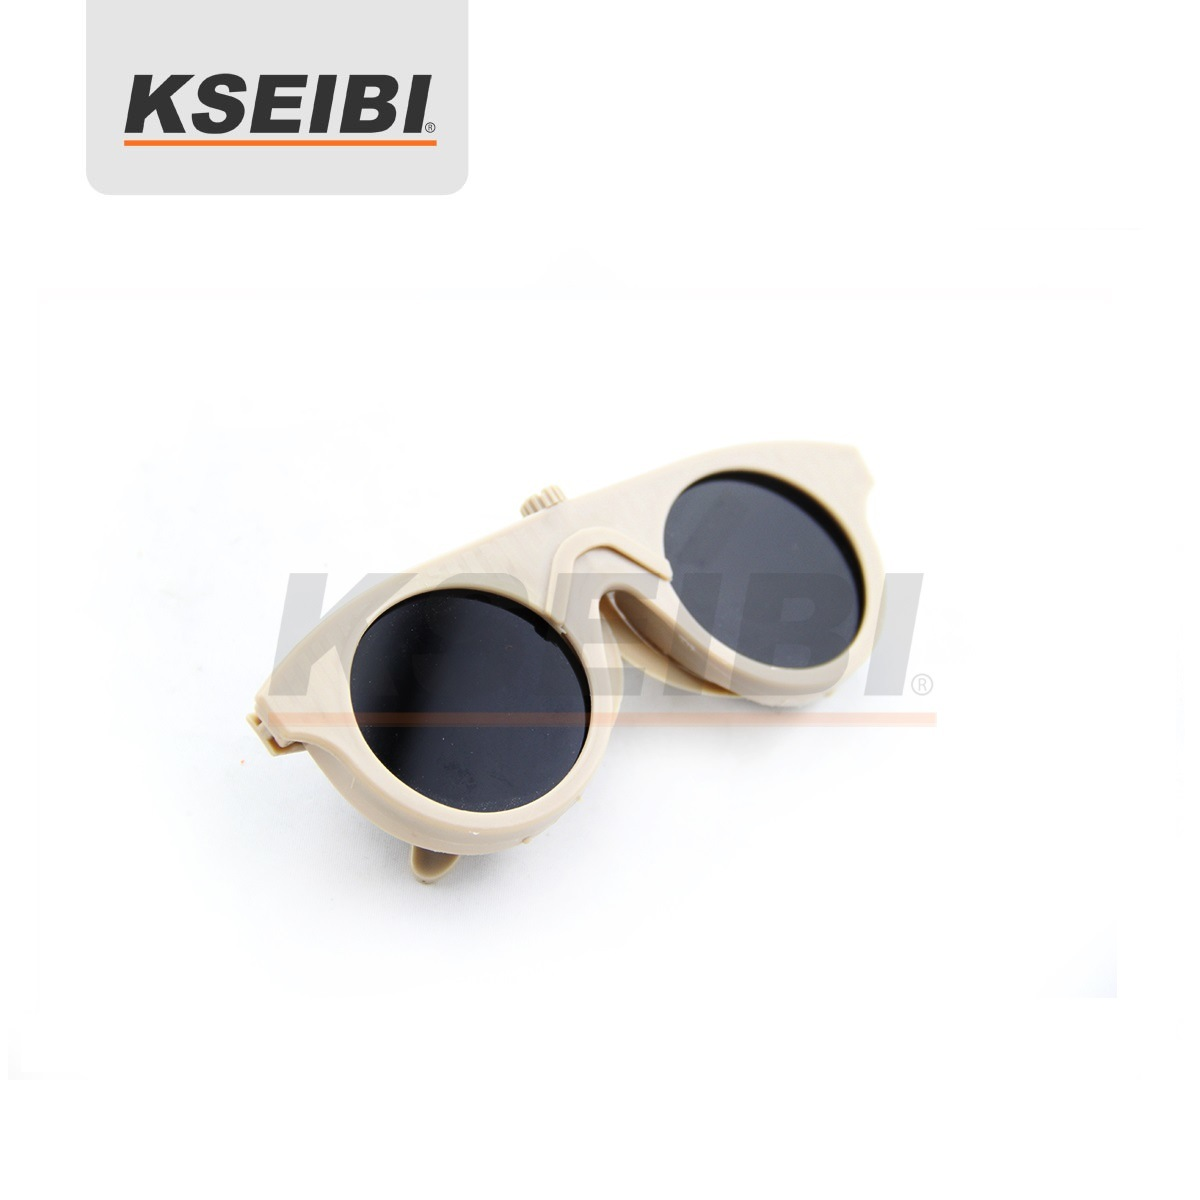 High Quality German Type Kseibi PC Eye Protect Welding Goggles